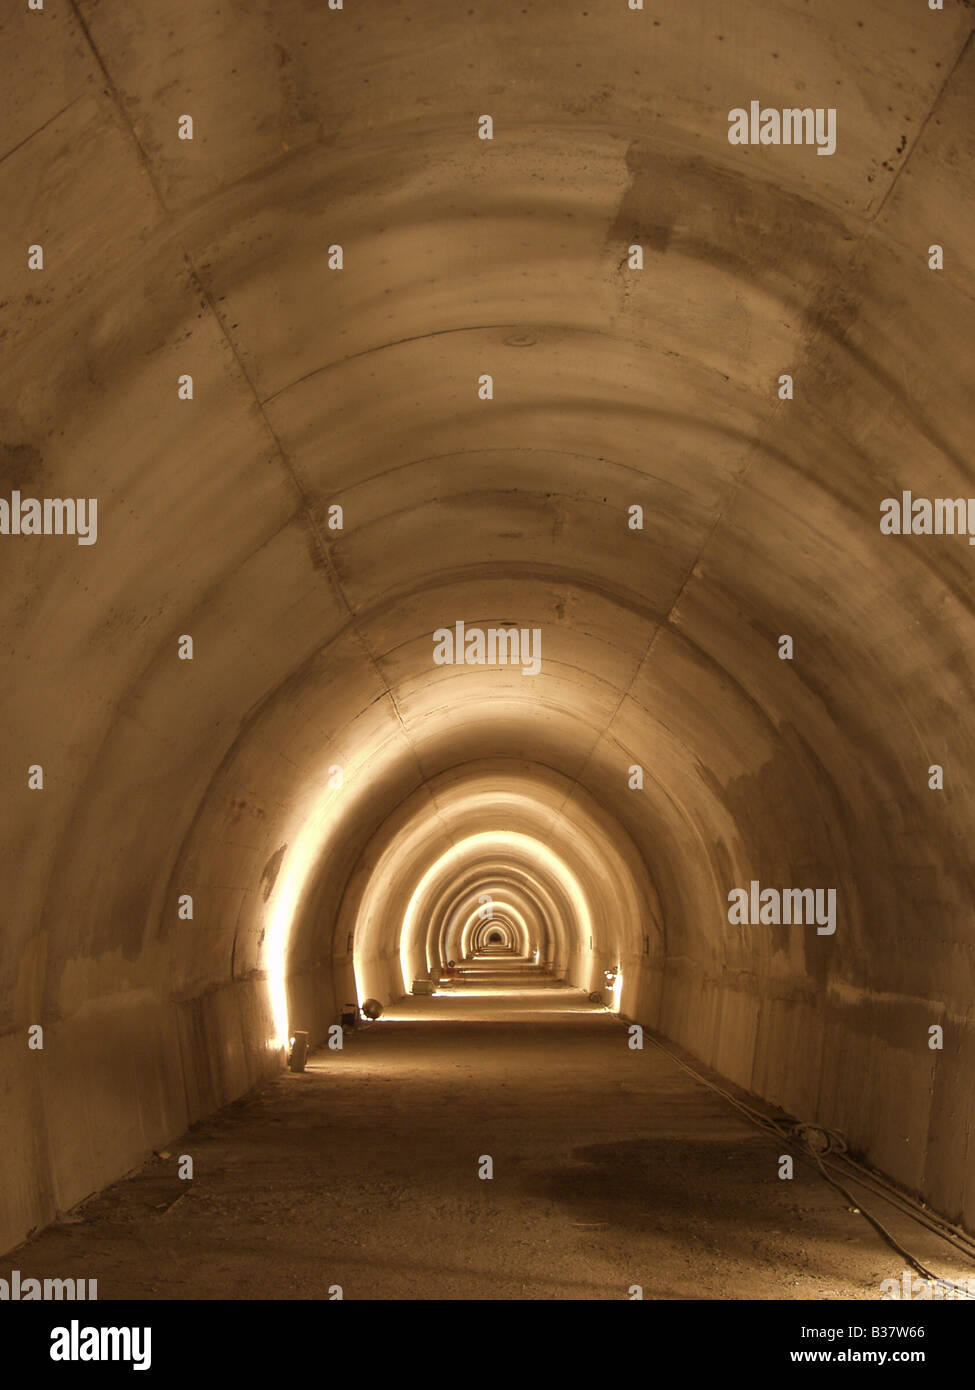 Tunnel - Stock Image